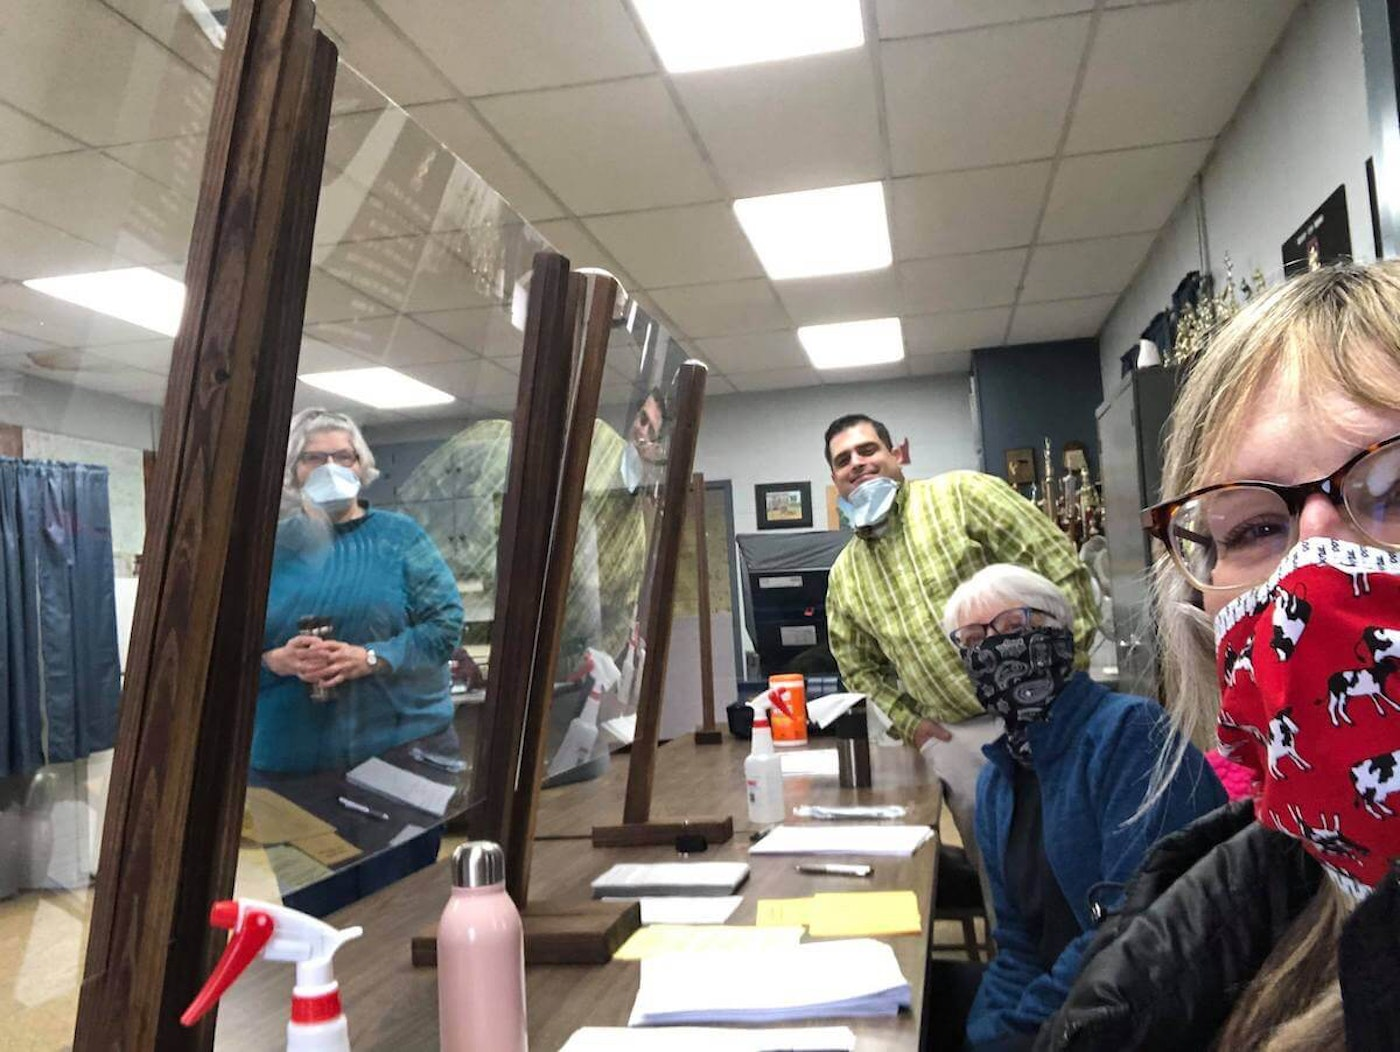 Kriss Marion of Blanchardville and fellow poll workers in Wiota, Wisconsin.